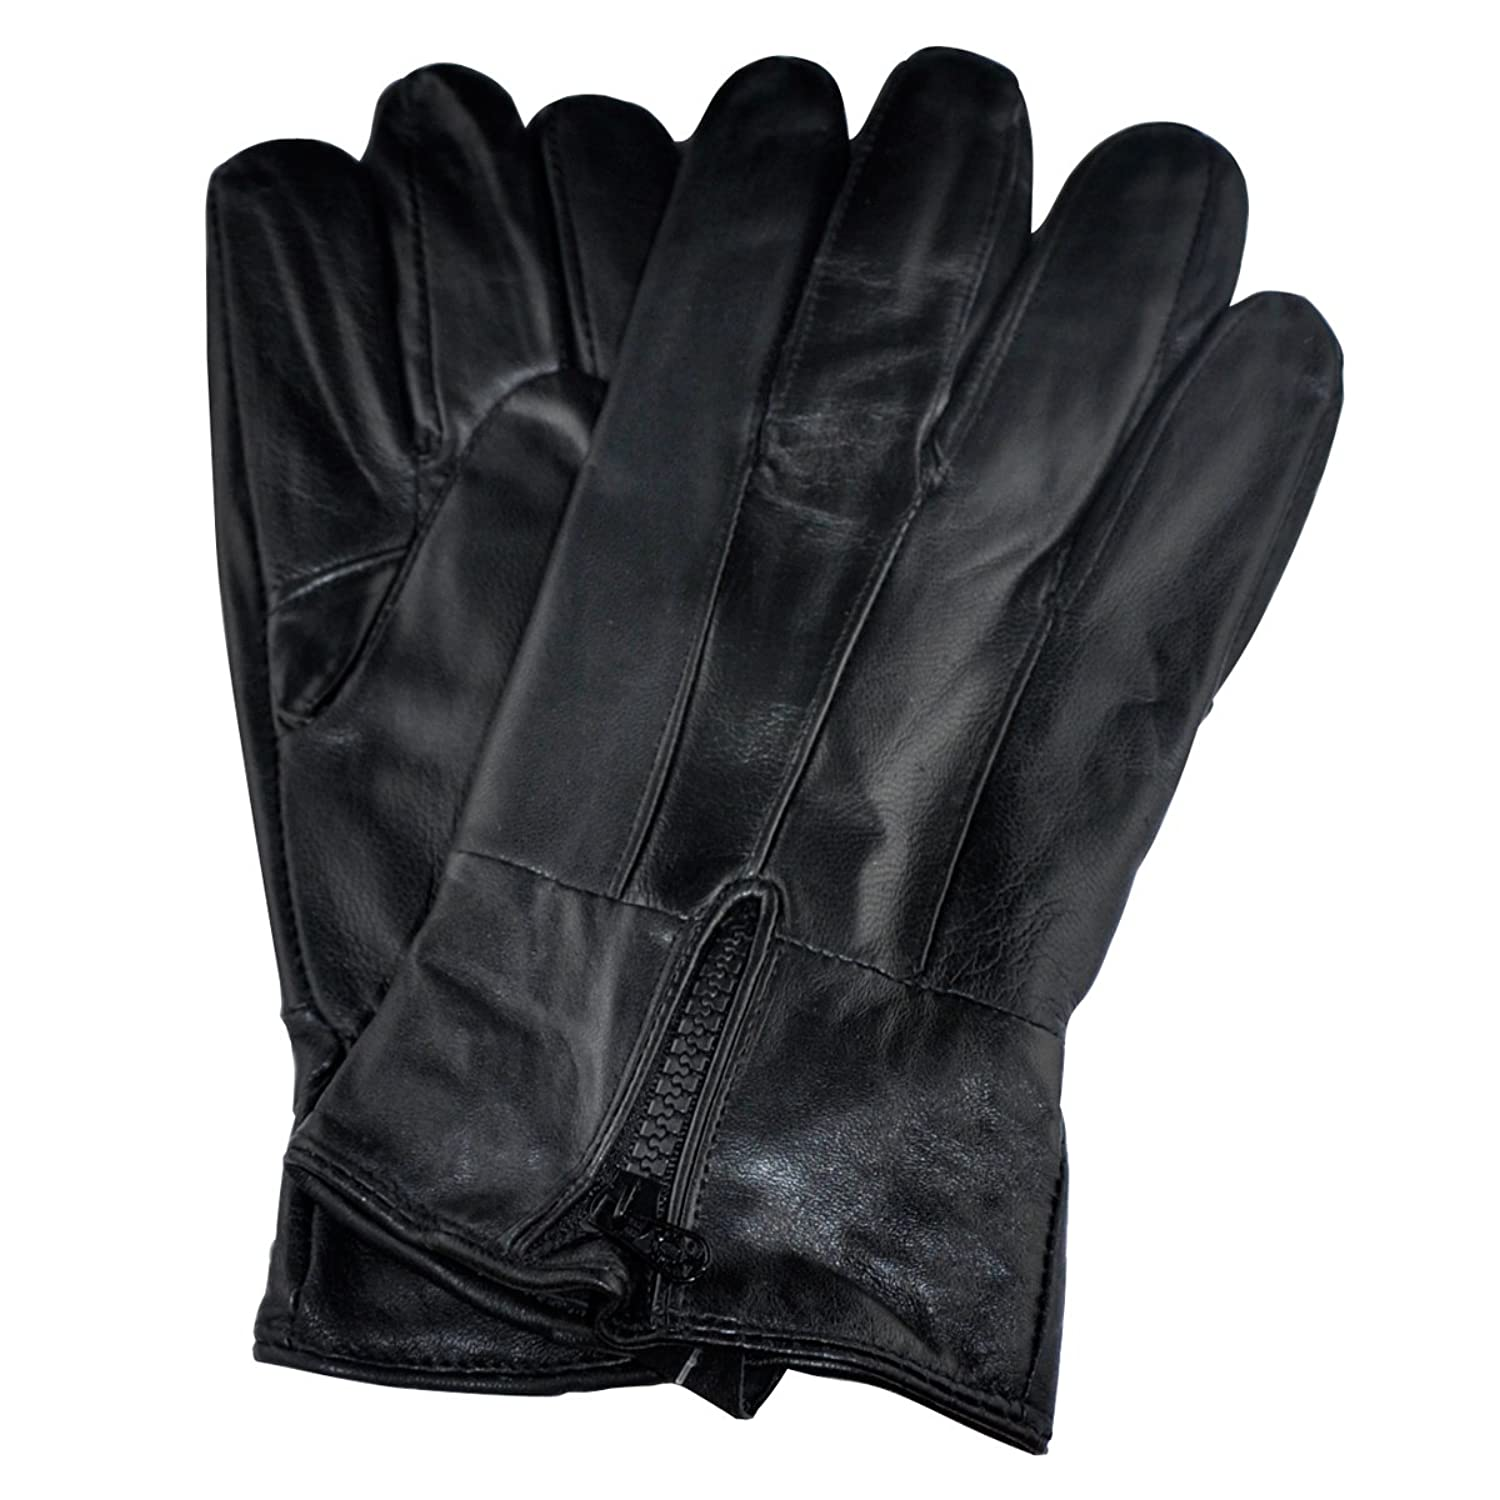 Samtee gm160 mens leather gloves with zipper black - Amazon Com Samtee Gm160 Mens Leather Gloves With Zipper Black Extra Large Clothing